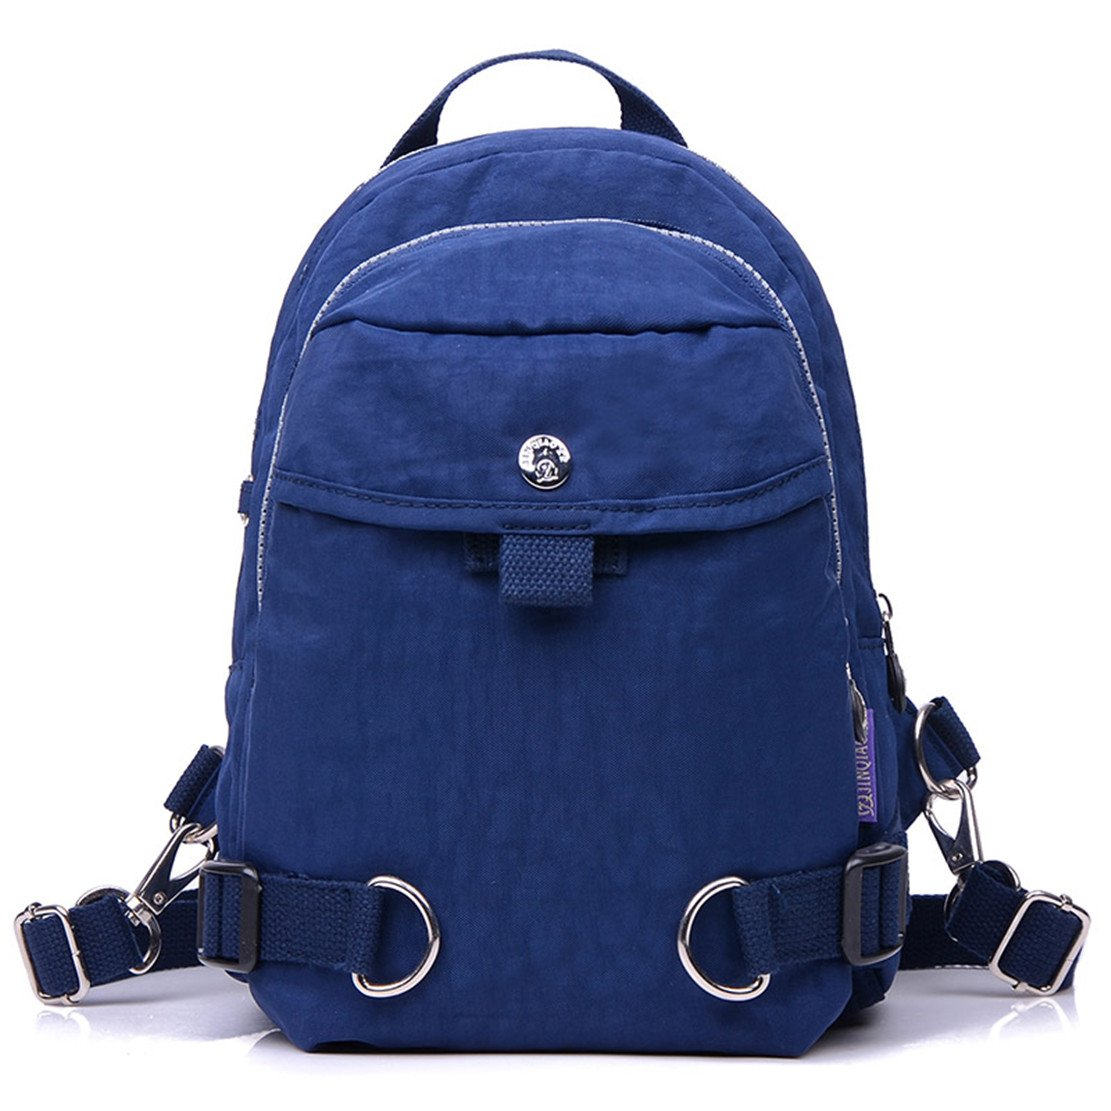 ea392ca60d71 TianHengYi Women s Lightweight Small Nylon Backpack Casual Strong Mini  Backpack Multipurpose Daypack for Girls Cycling Hiking Camping Travel  Outdoor ...